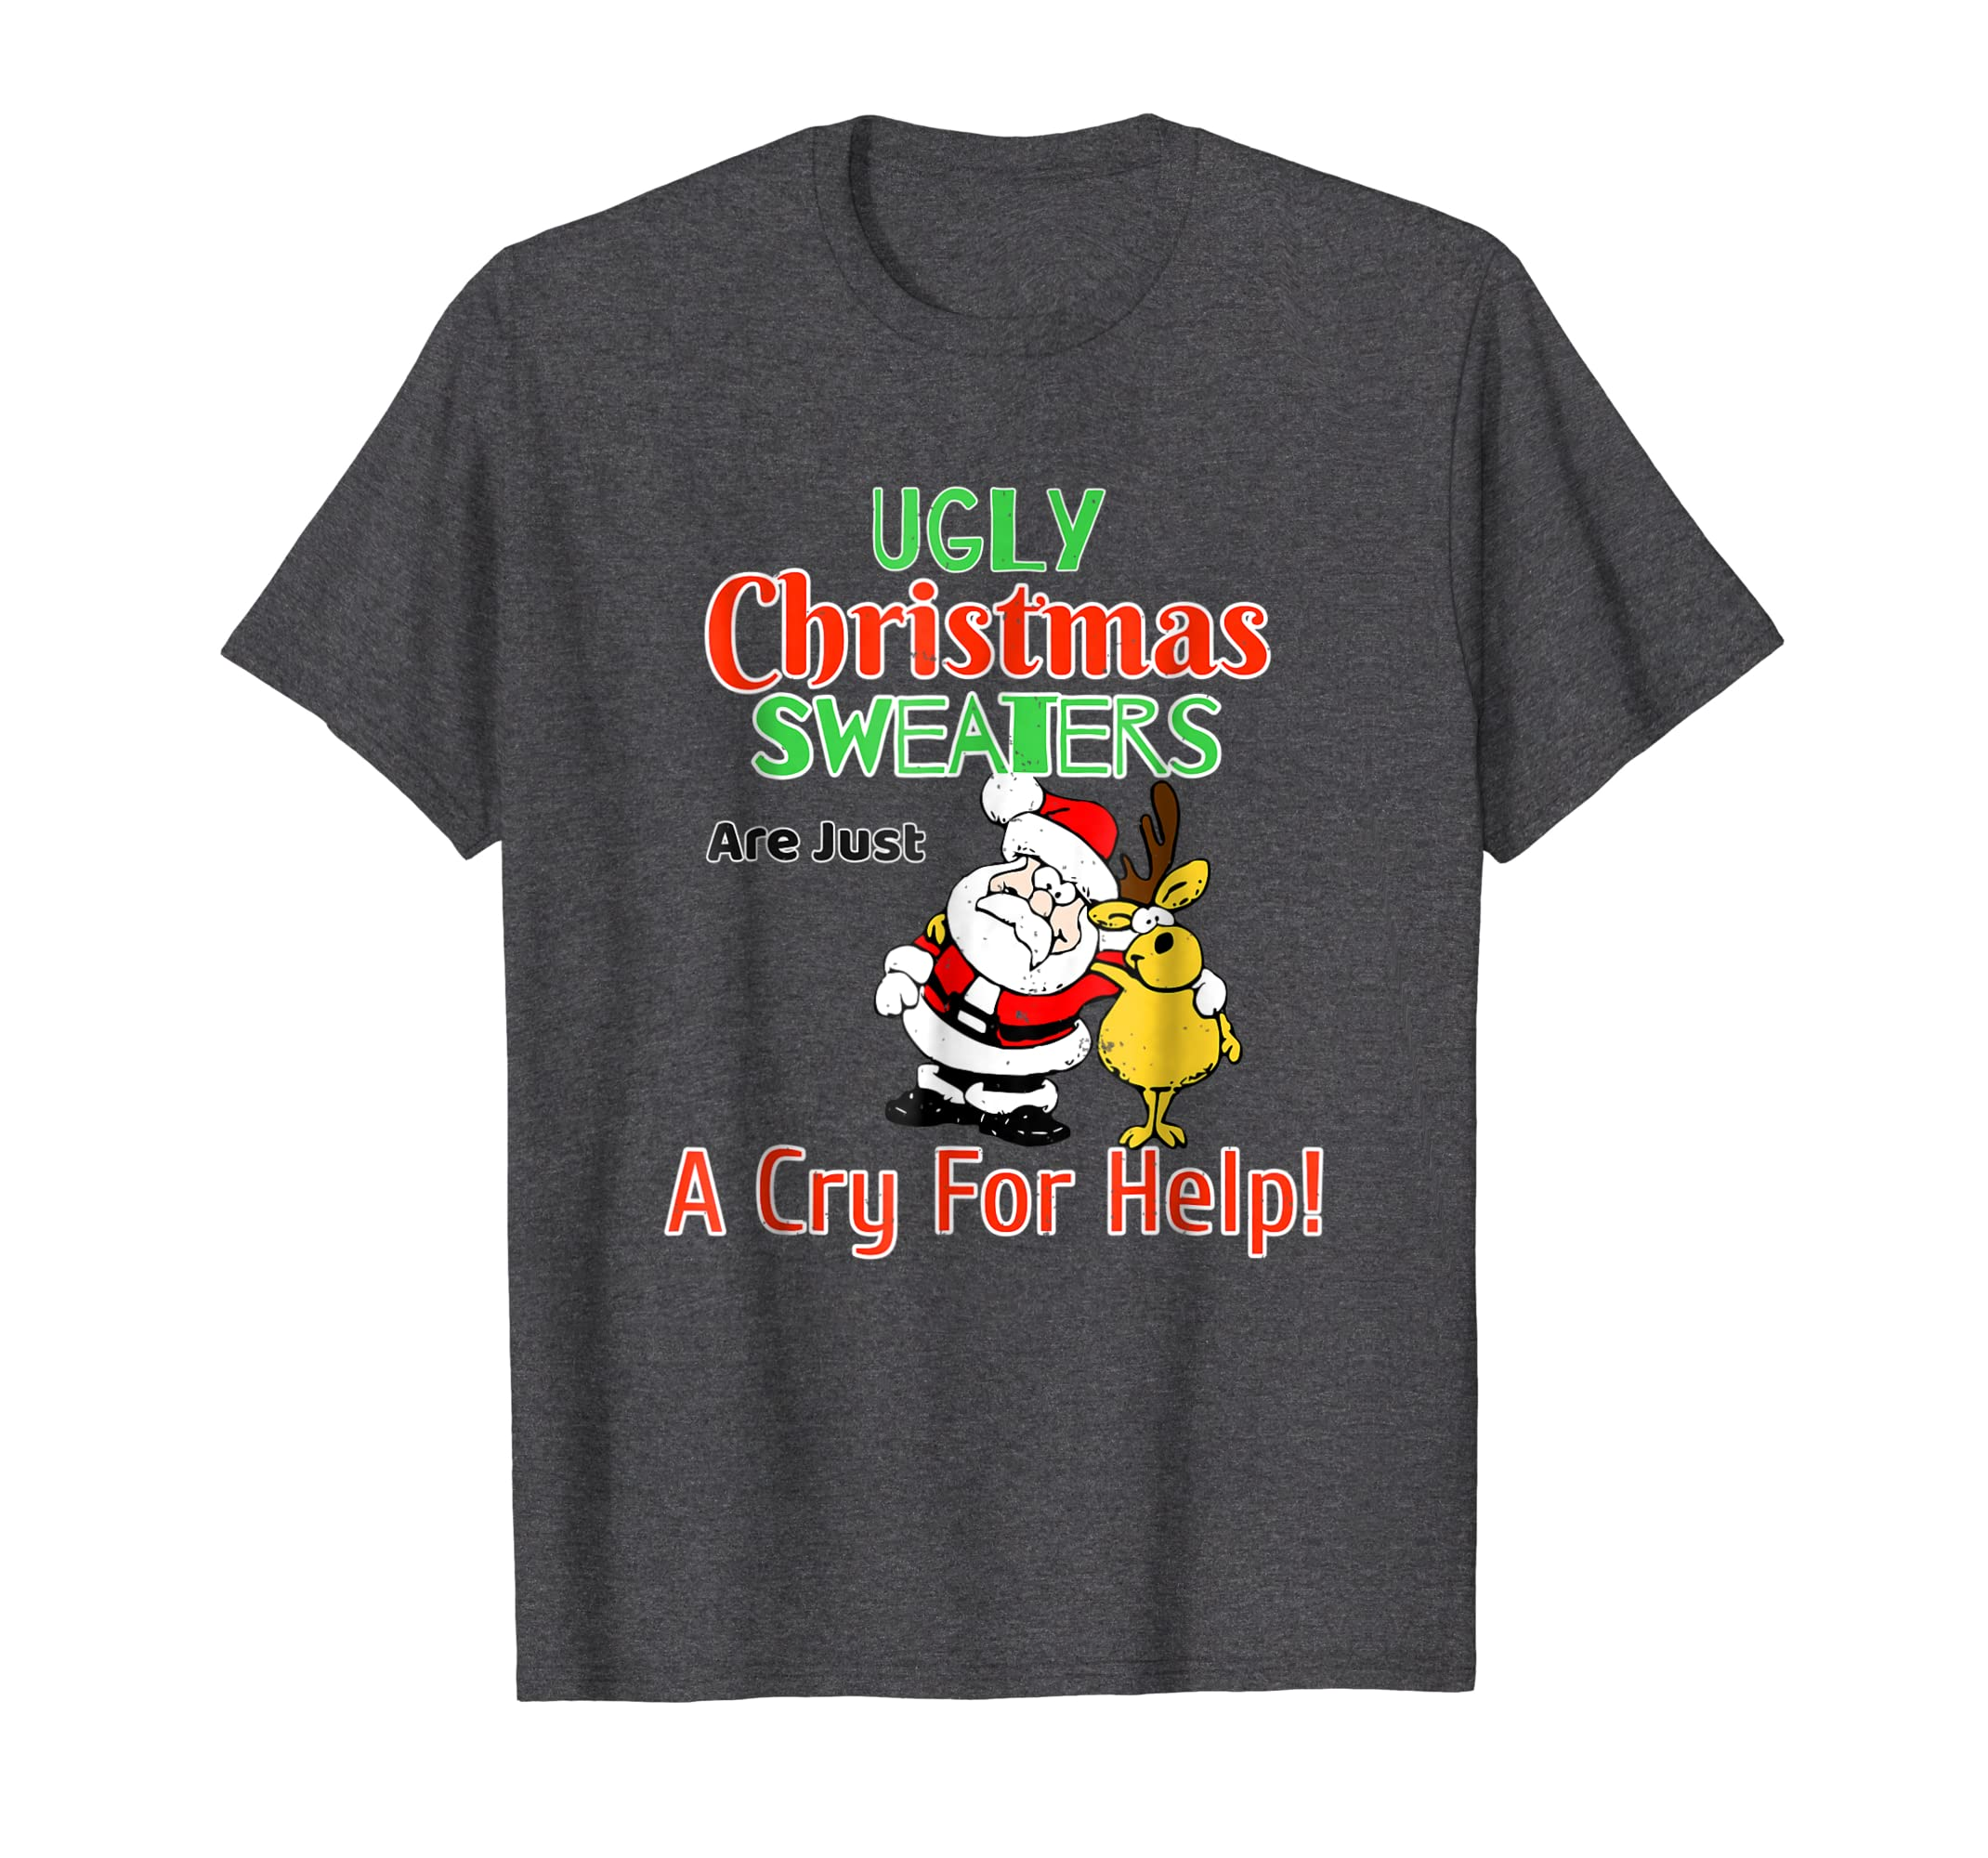 Amazon.com: Ugly Christmas Sweaters Are Just A Cry For Help! Funny ...